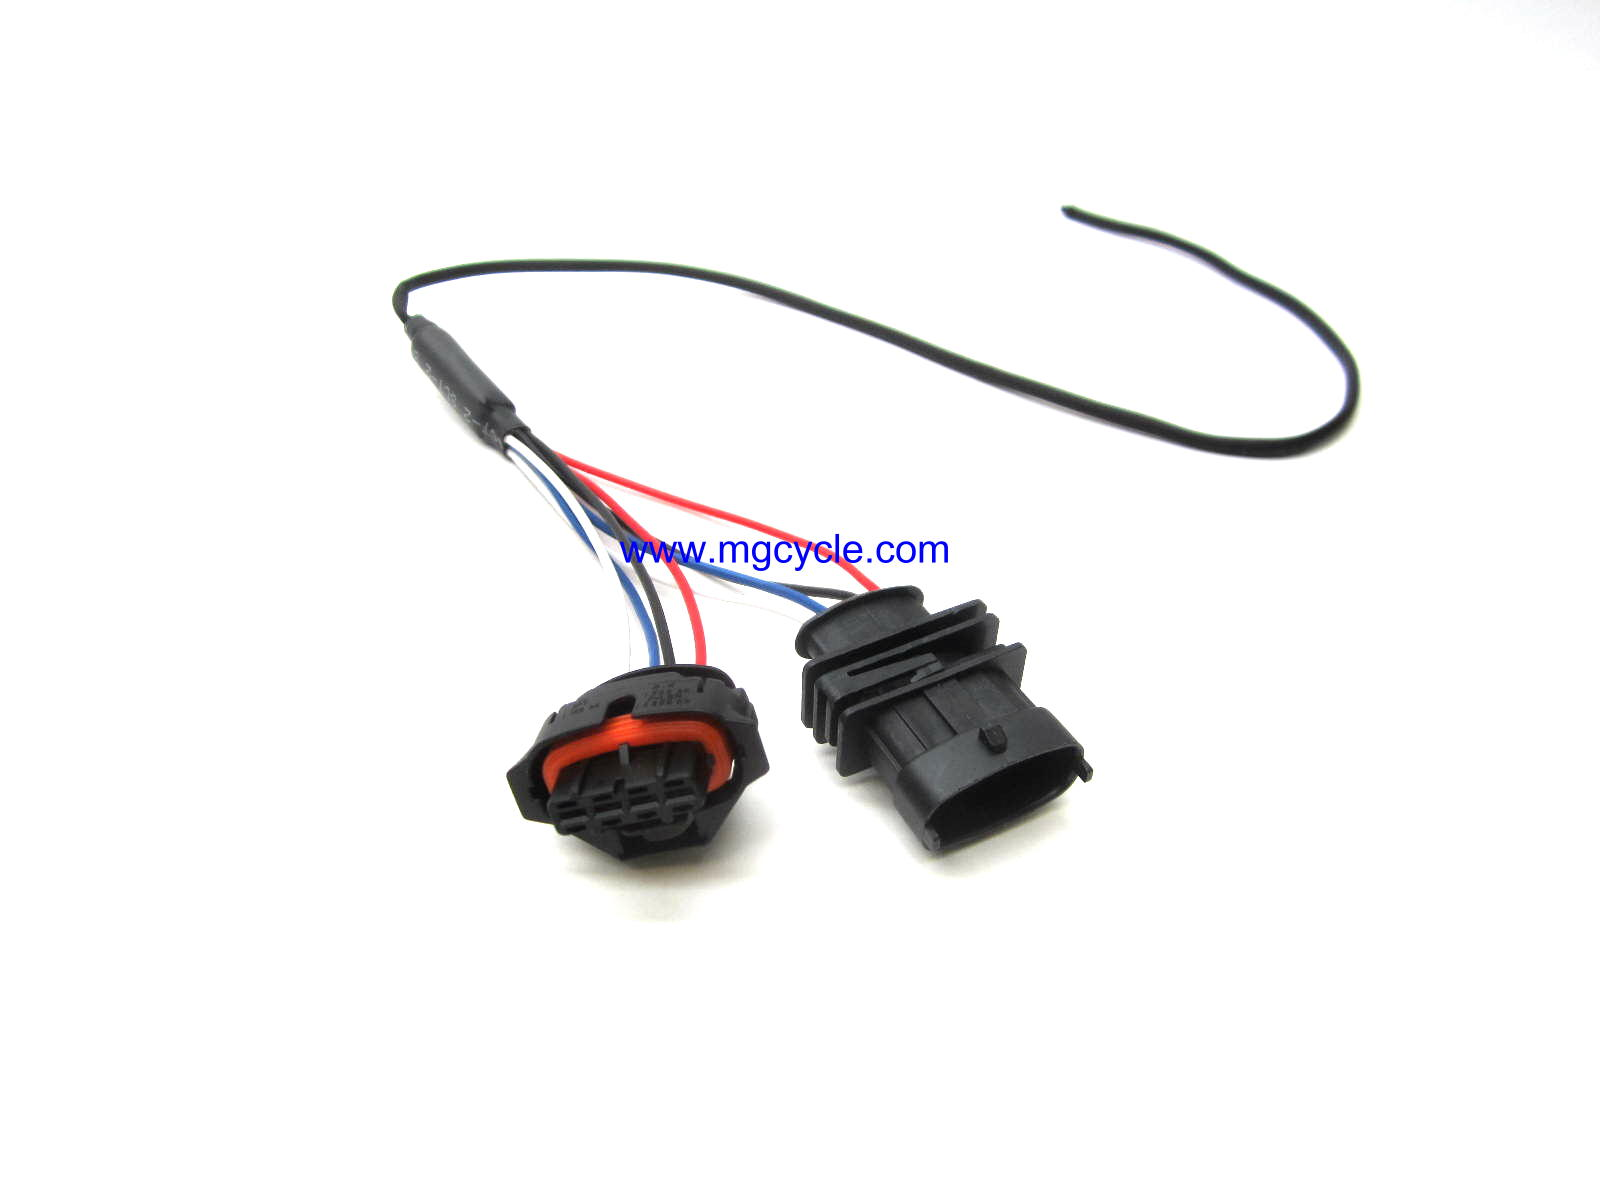 Mistral V-TWINBOOST fuel injection module for 1400cc MG-VTB14